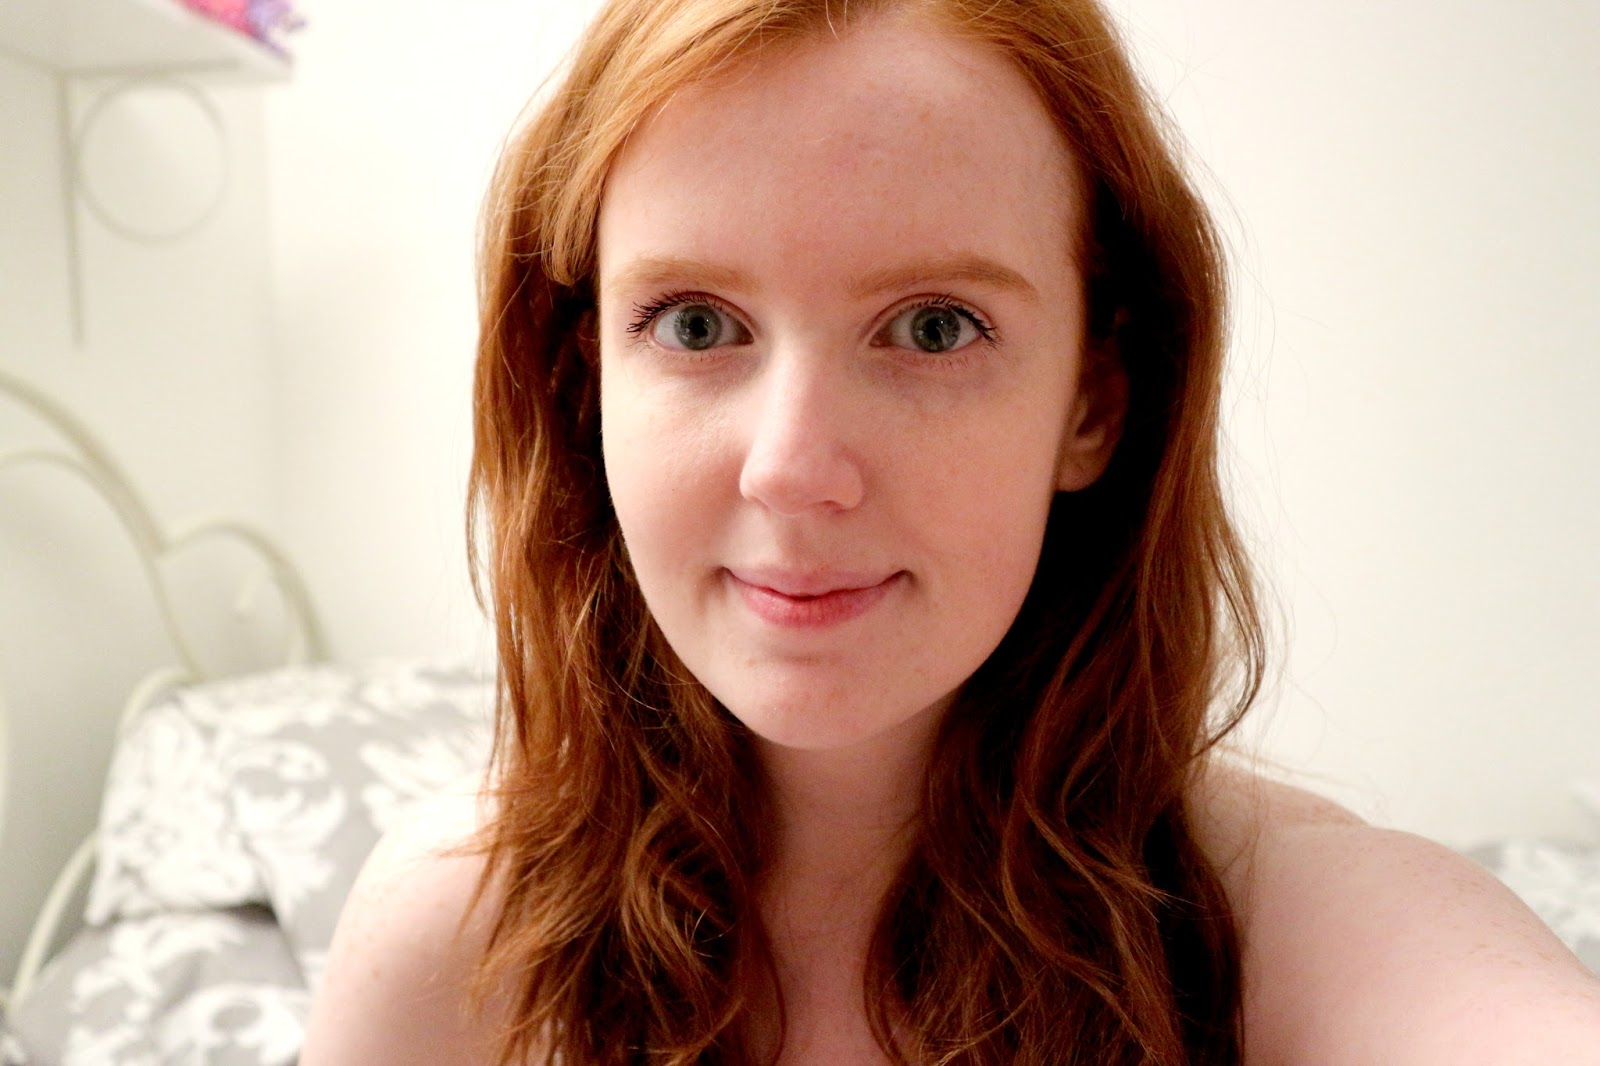 Brow Products For Redheads